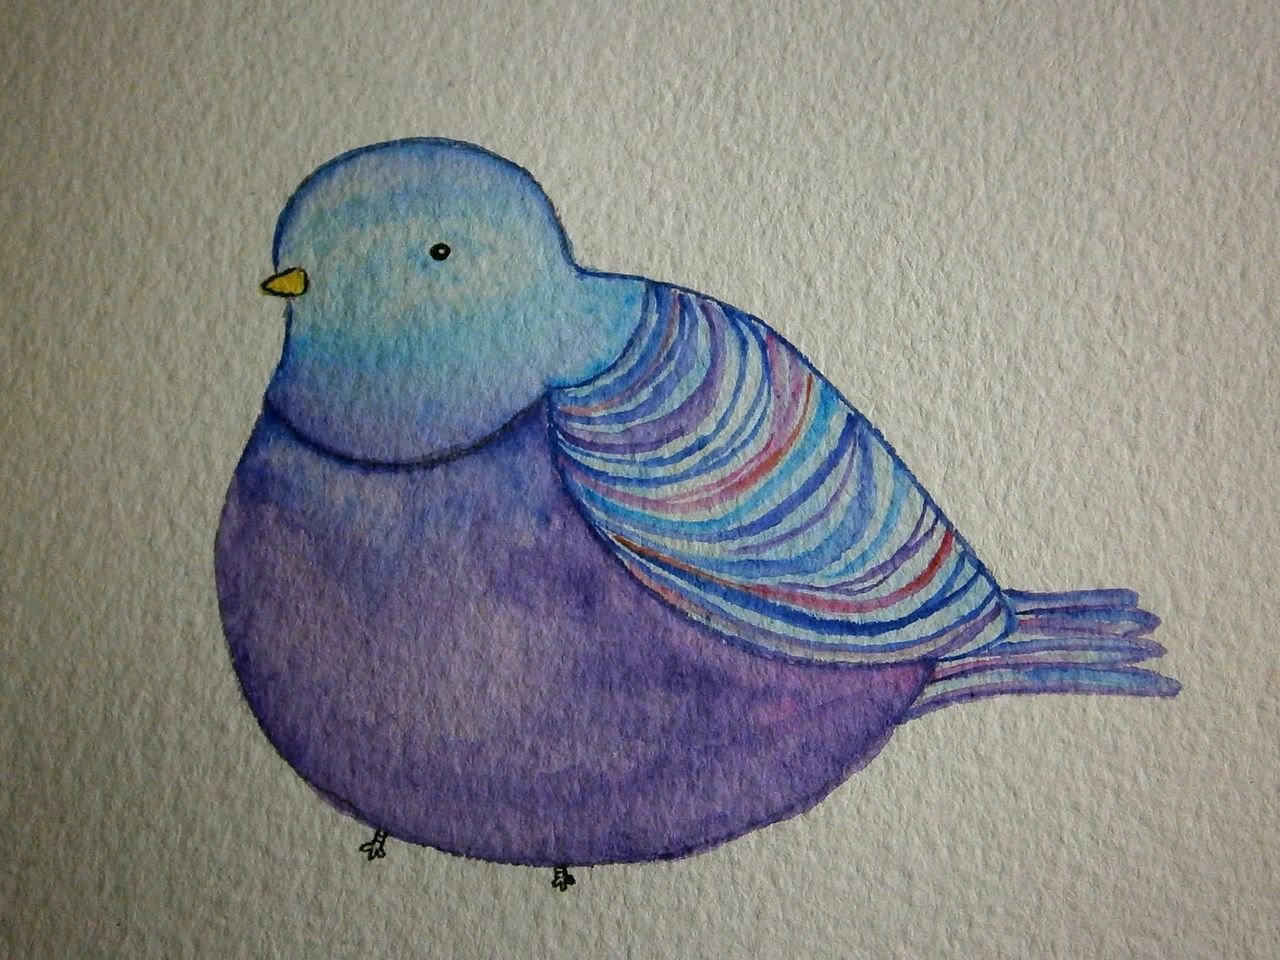 Pigeon inspired by the work of kate wilson littledoodles a pigeon inspired by the work of kate wilson littledoodles a birthday card bookmarktalkfo Images